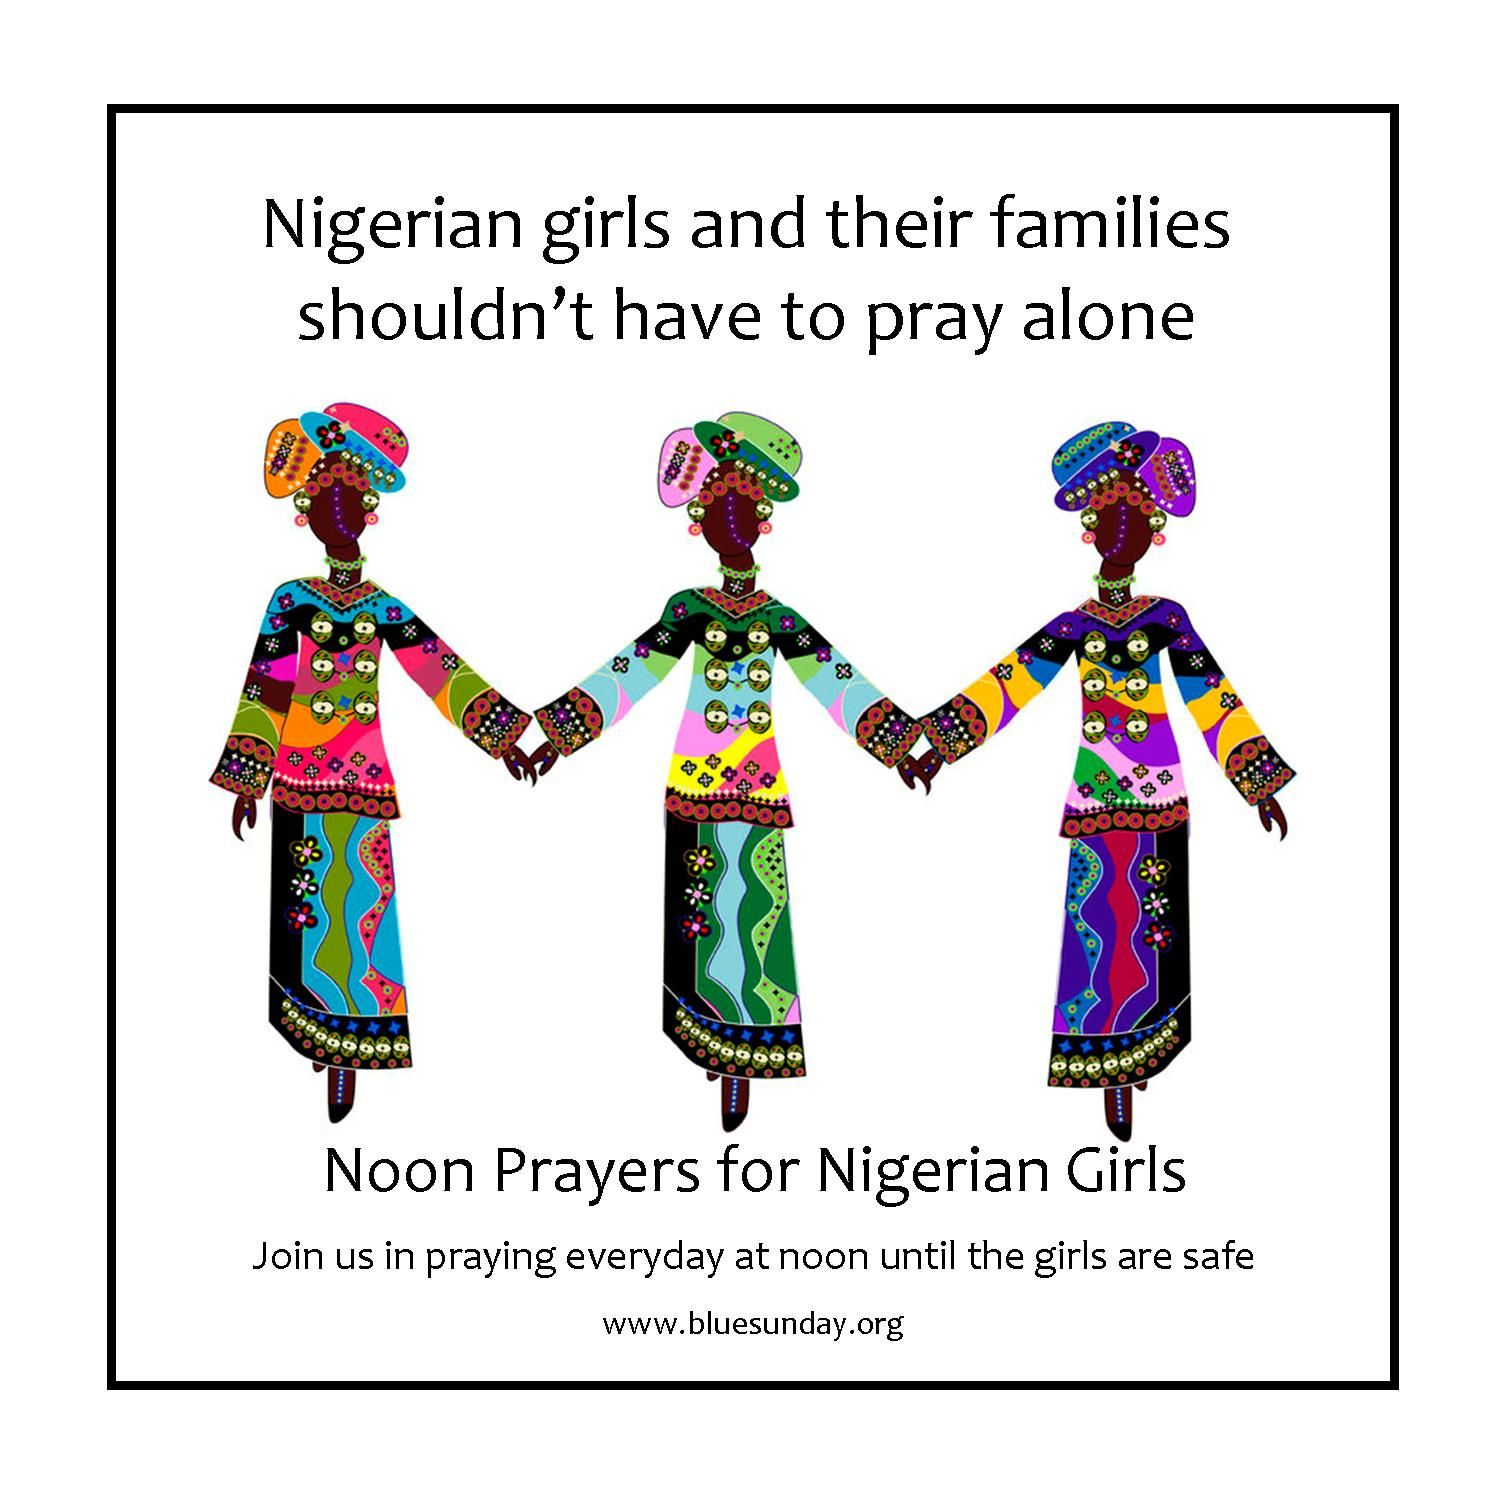 Daily Prayers For Safe Return Of Nigerian Girls